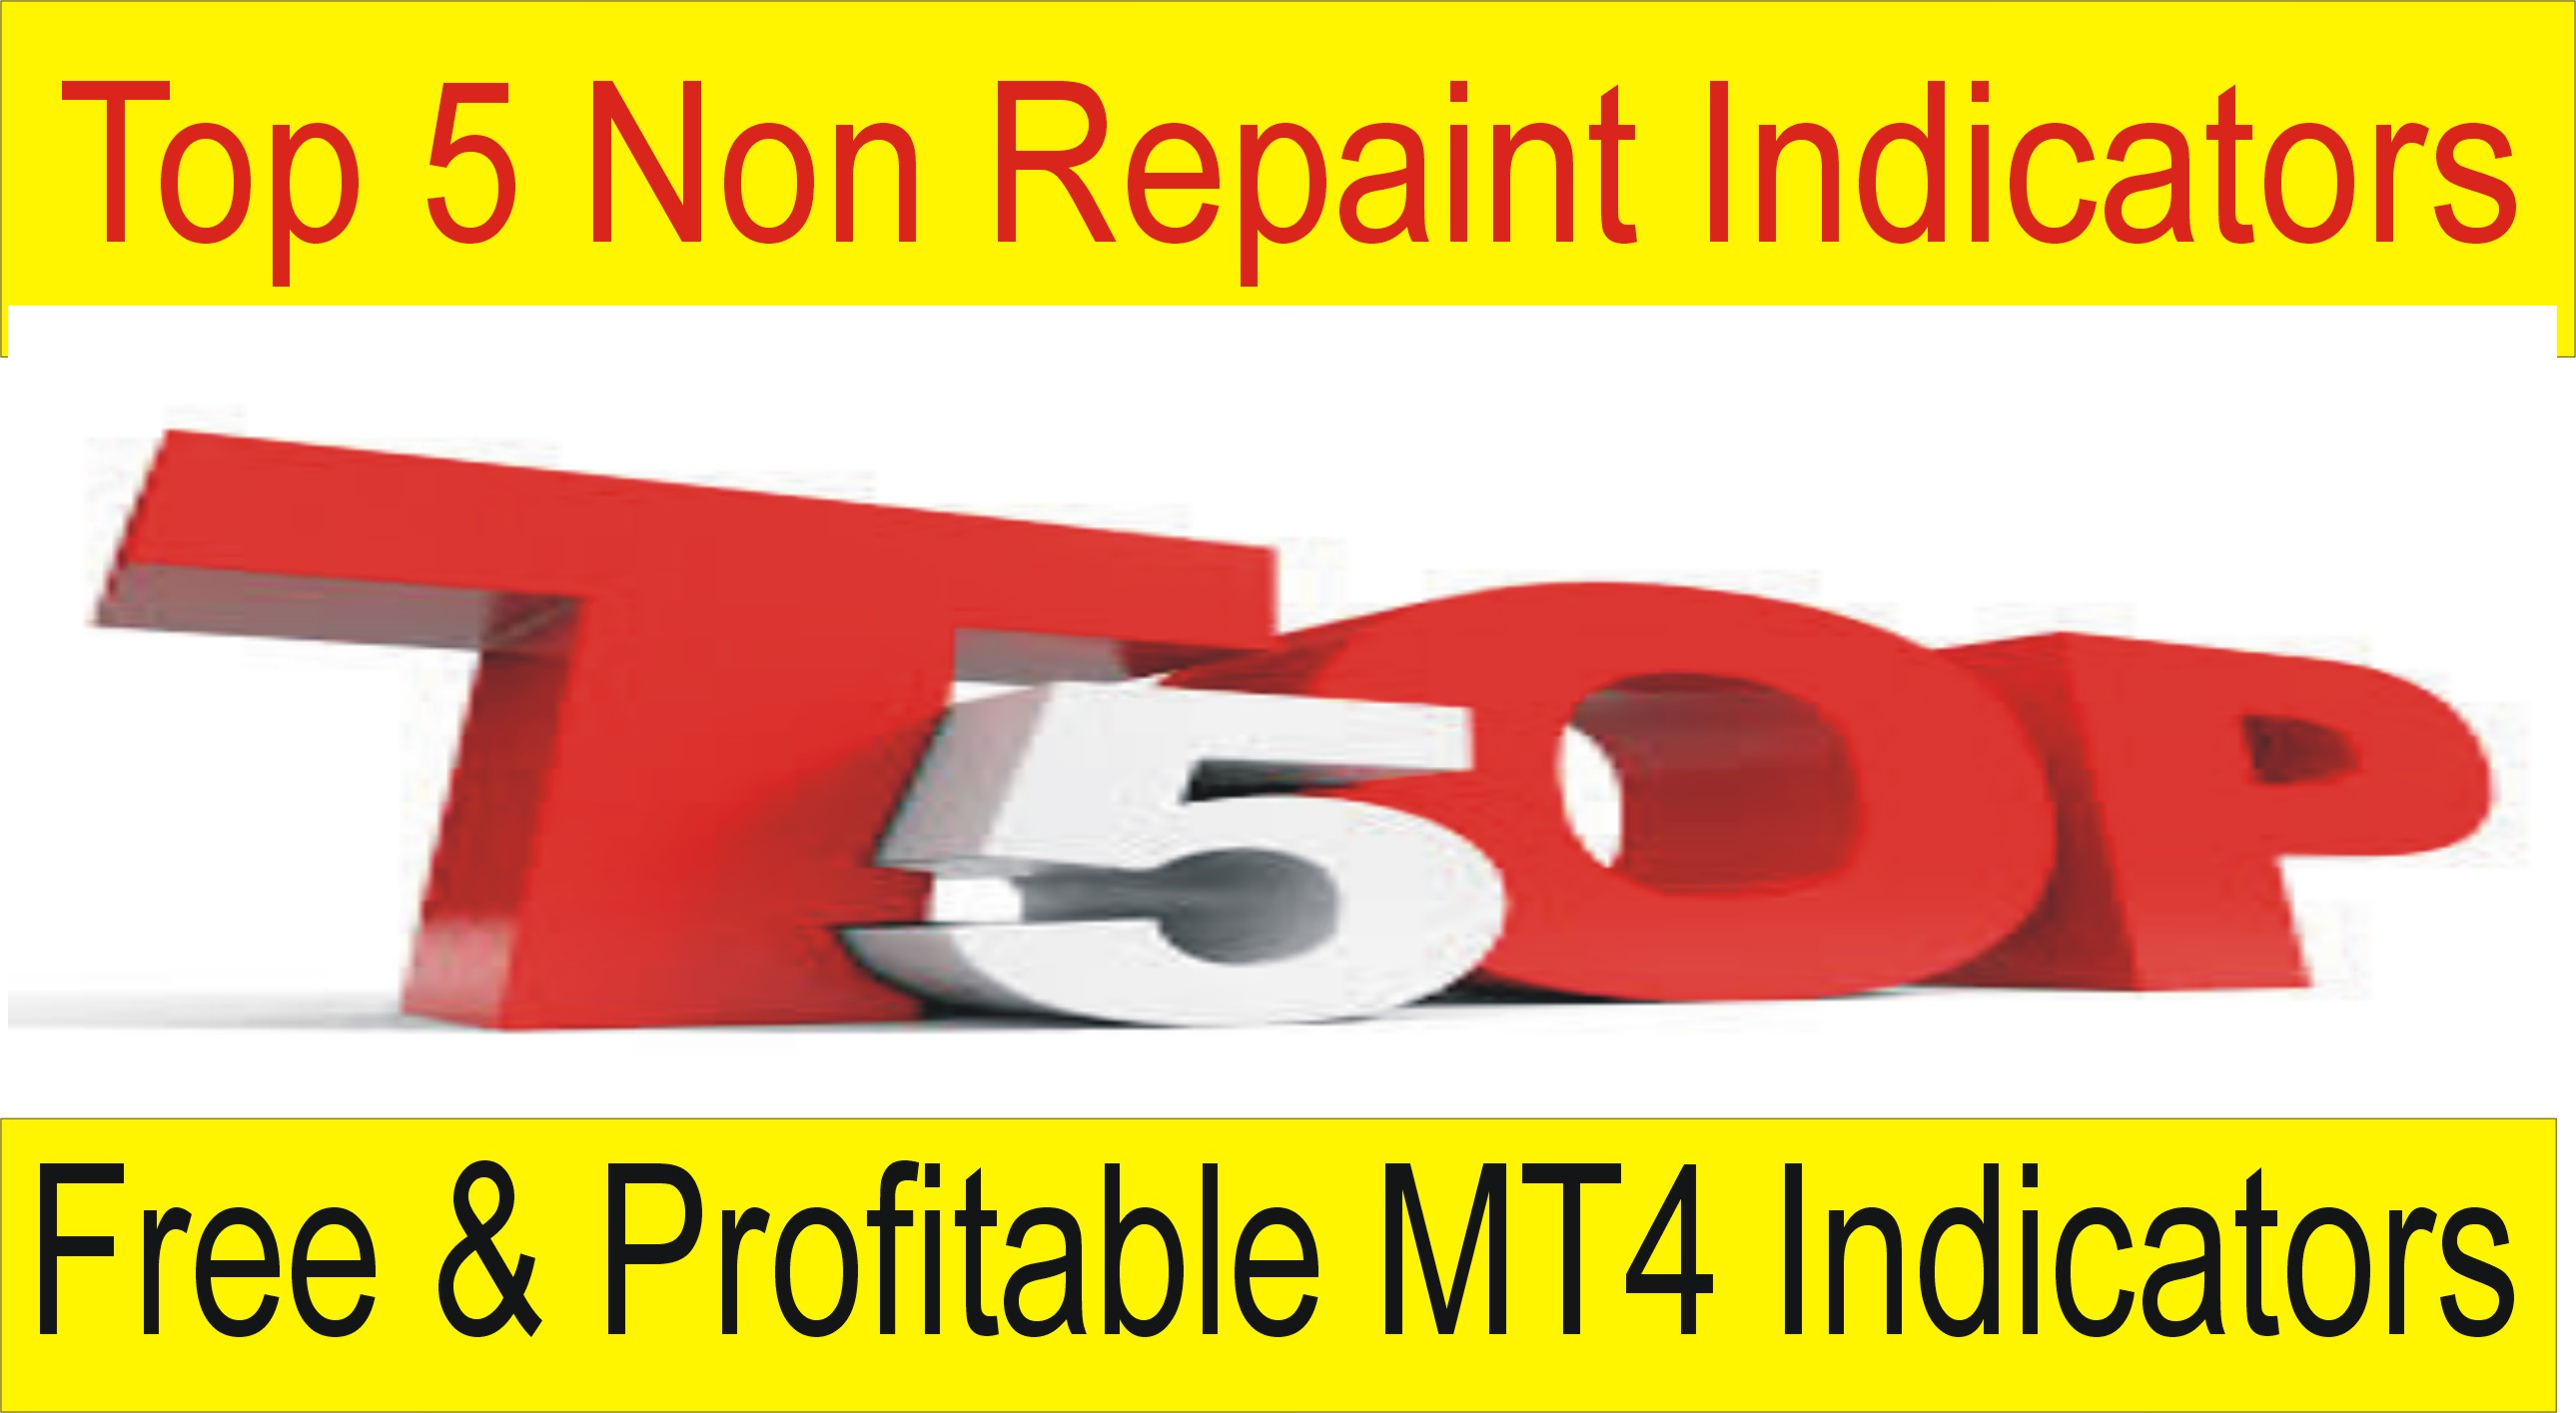 Top 5 Non Repaint Best Forex MT4 indicators Of The World - Tani Forex